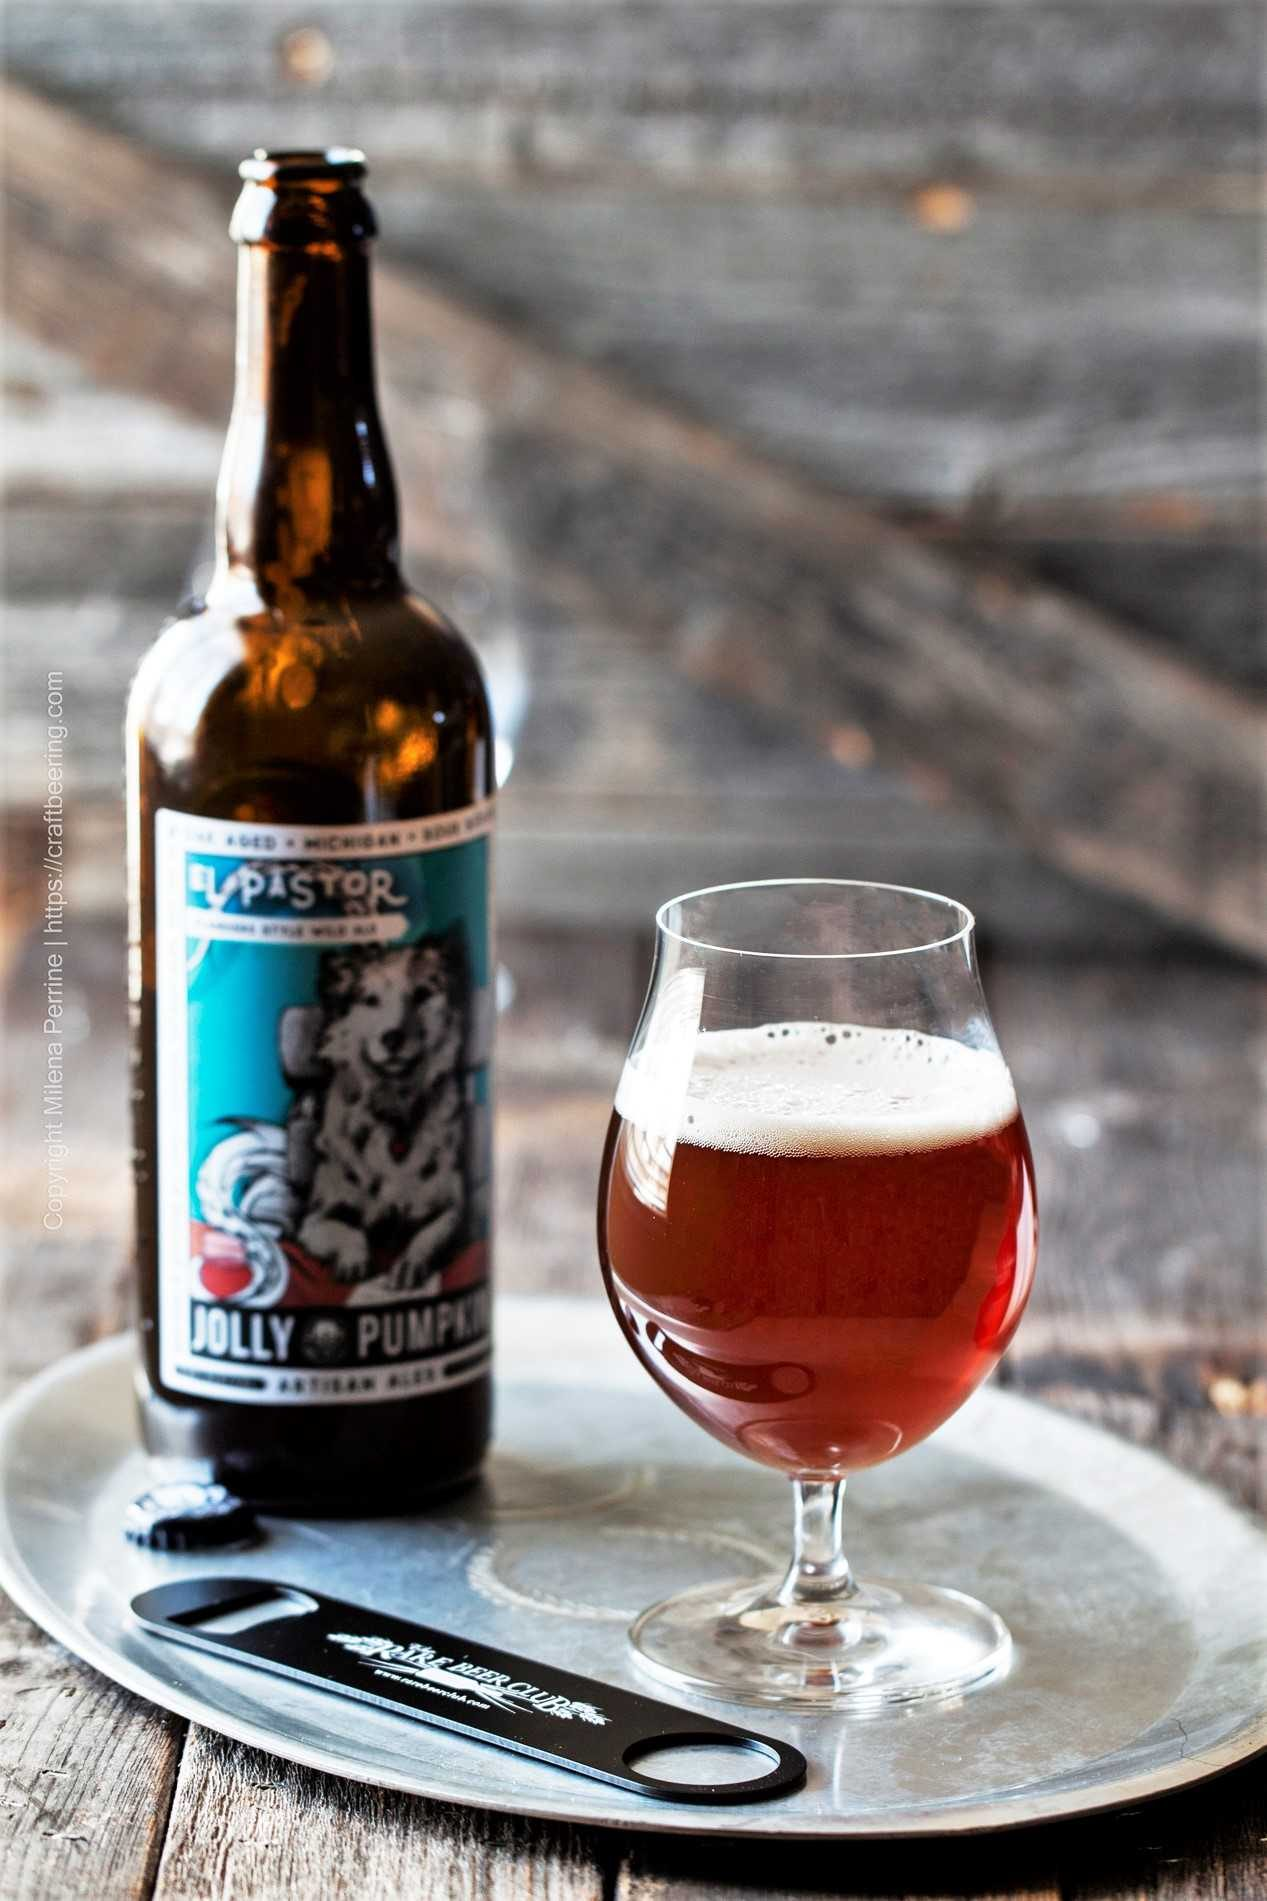 El Pastor wild ale, brewed exclusively for the members of the Rare Beer Club.